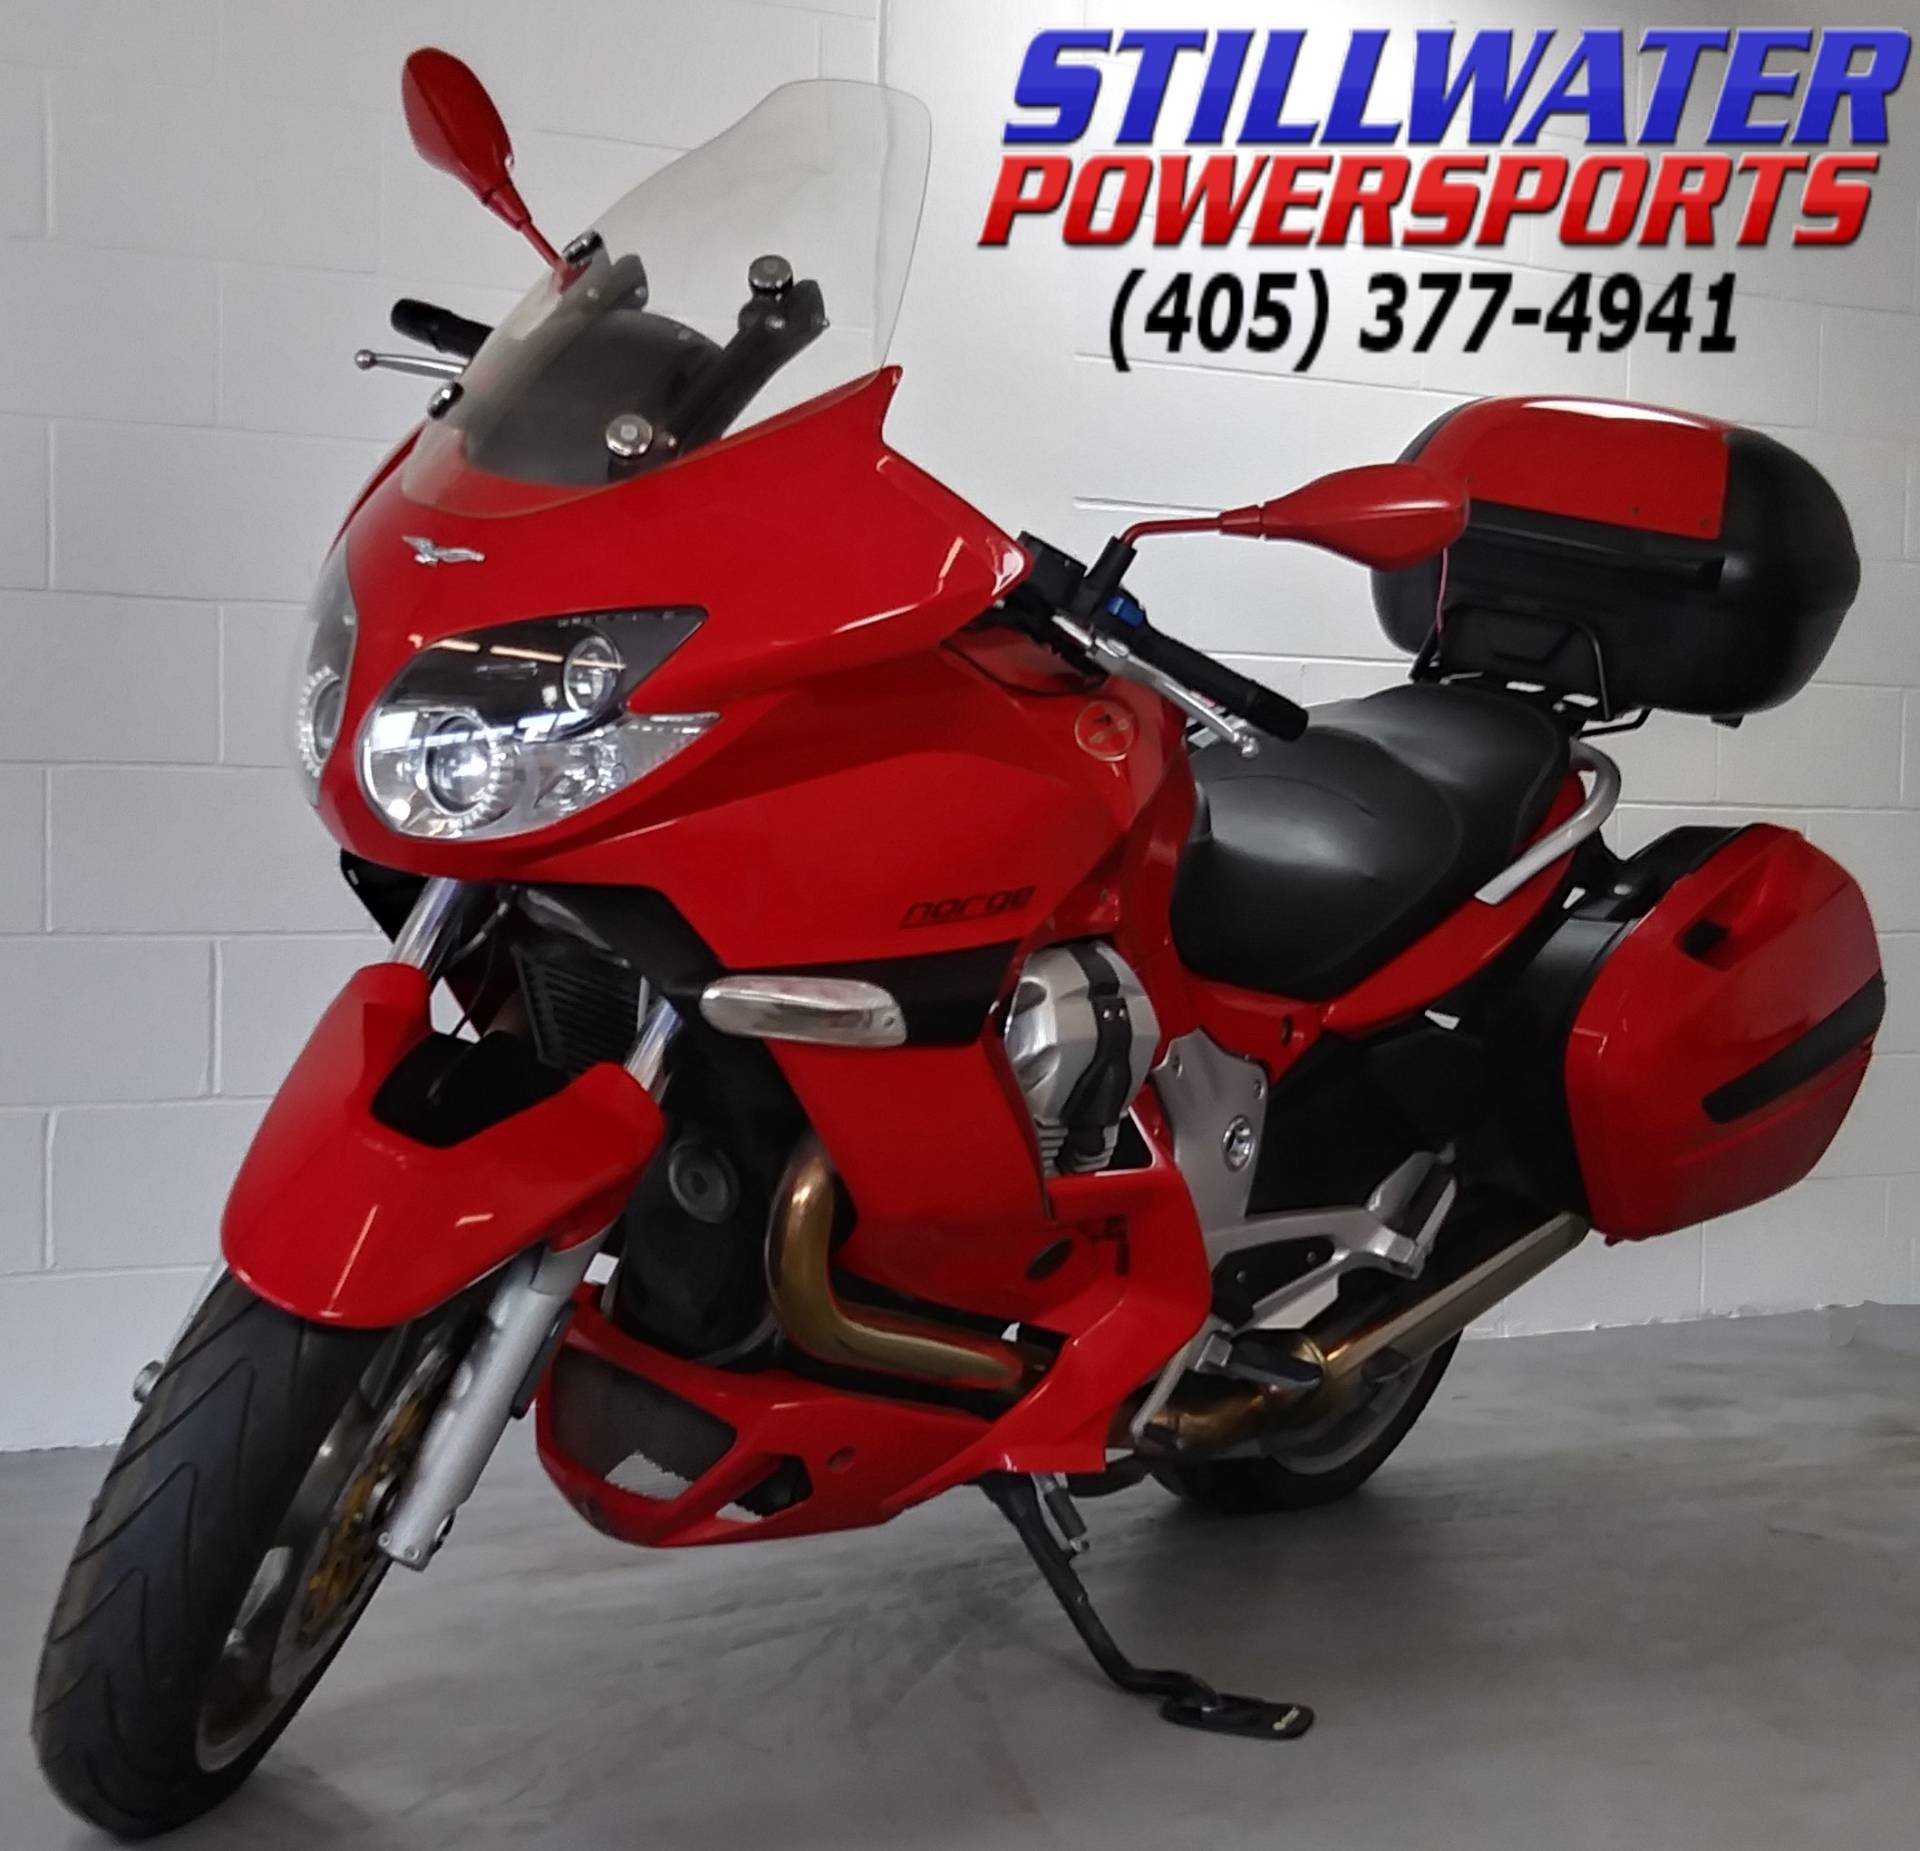 2008 Moto Guzzi Norge 1200 GT in Stillwater, Oklahoma - Photo 2